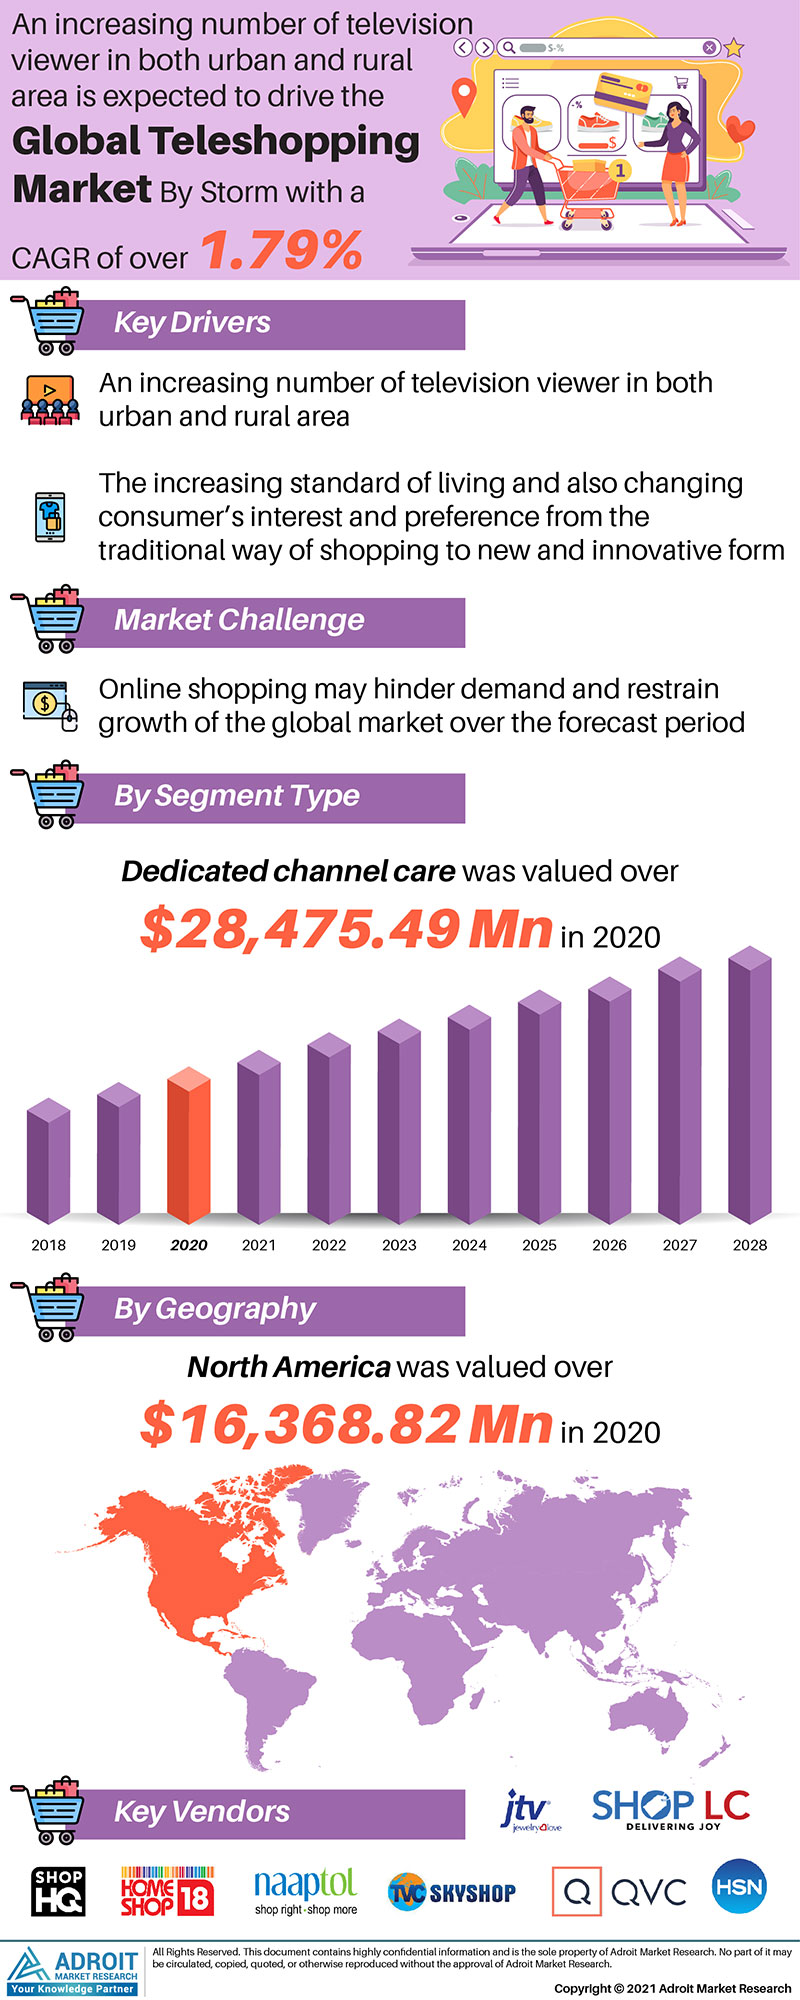 Global Teleshopping Market Trends and Forecasts Research Report